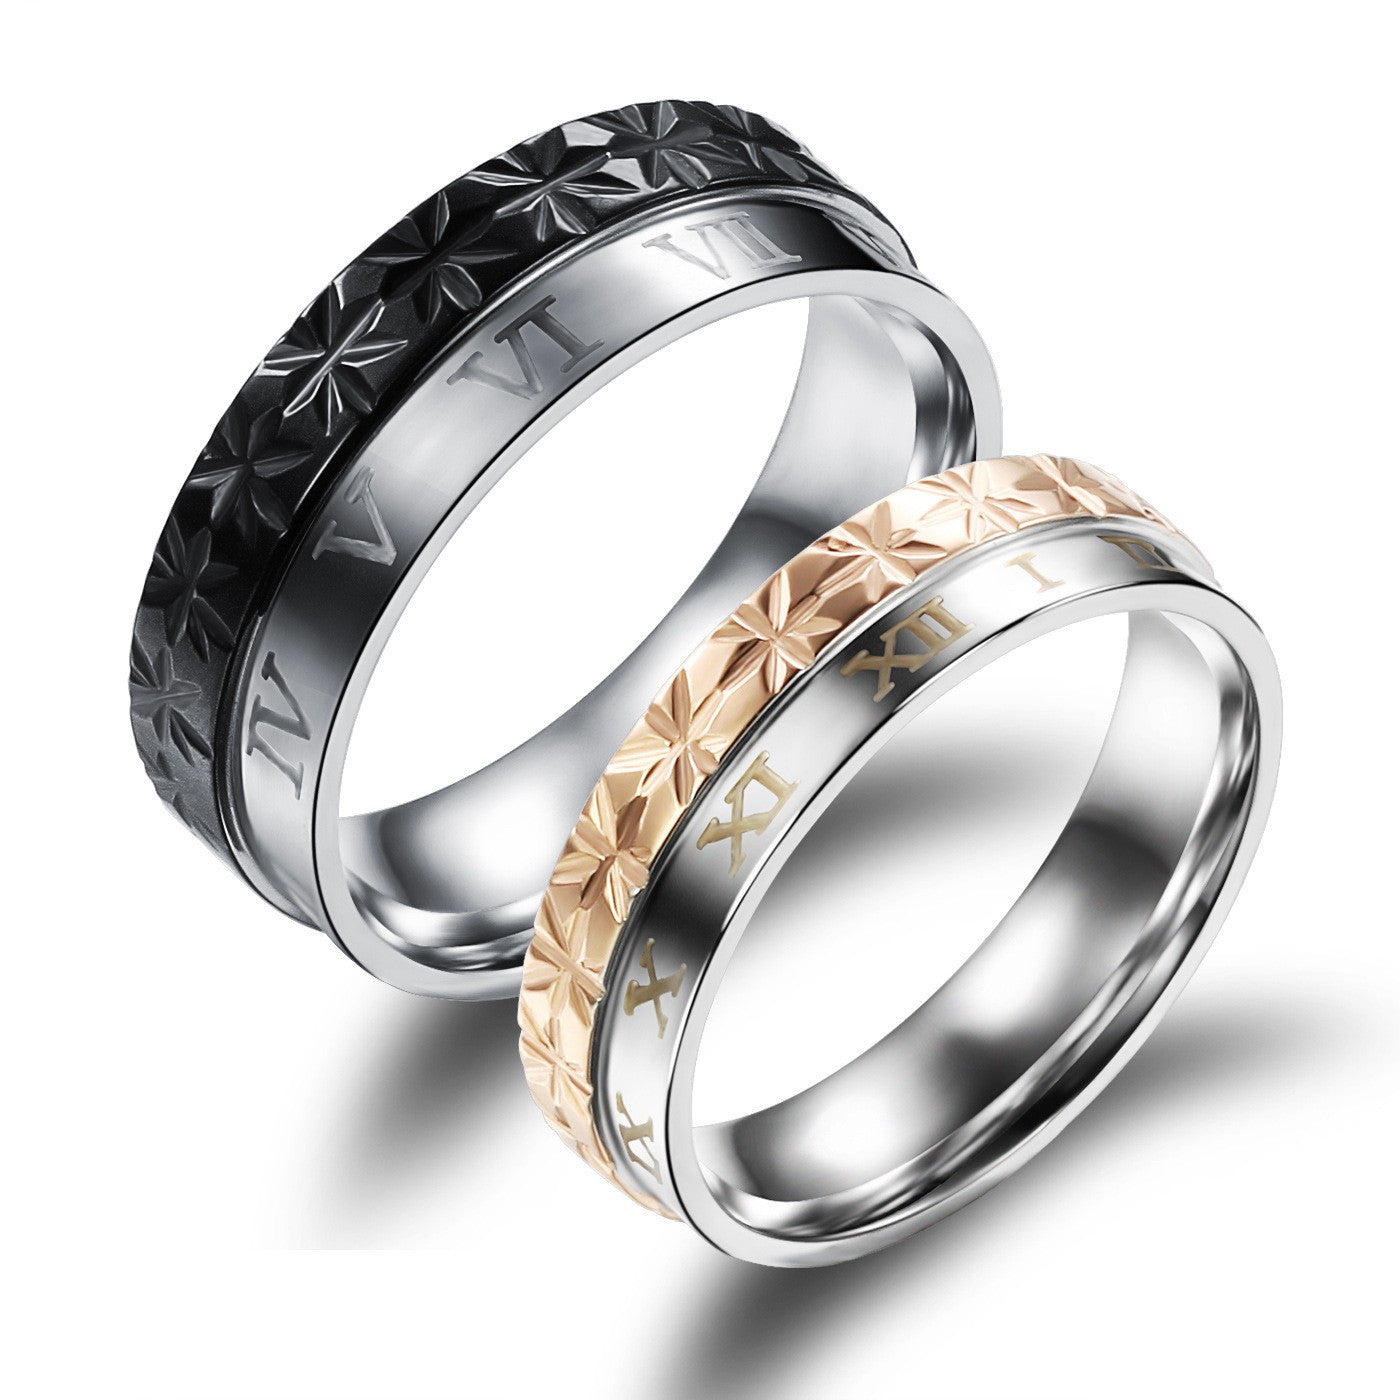 adjustable evermarker wedding ideas popular pleasurable ring rings corners